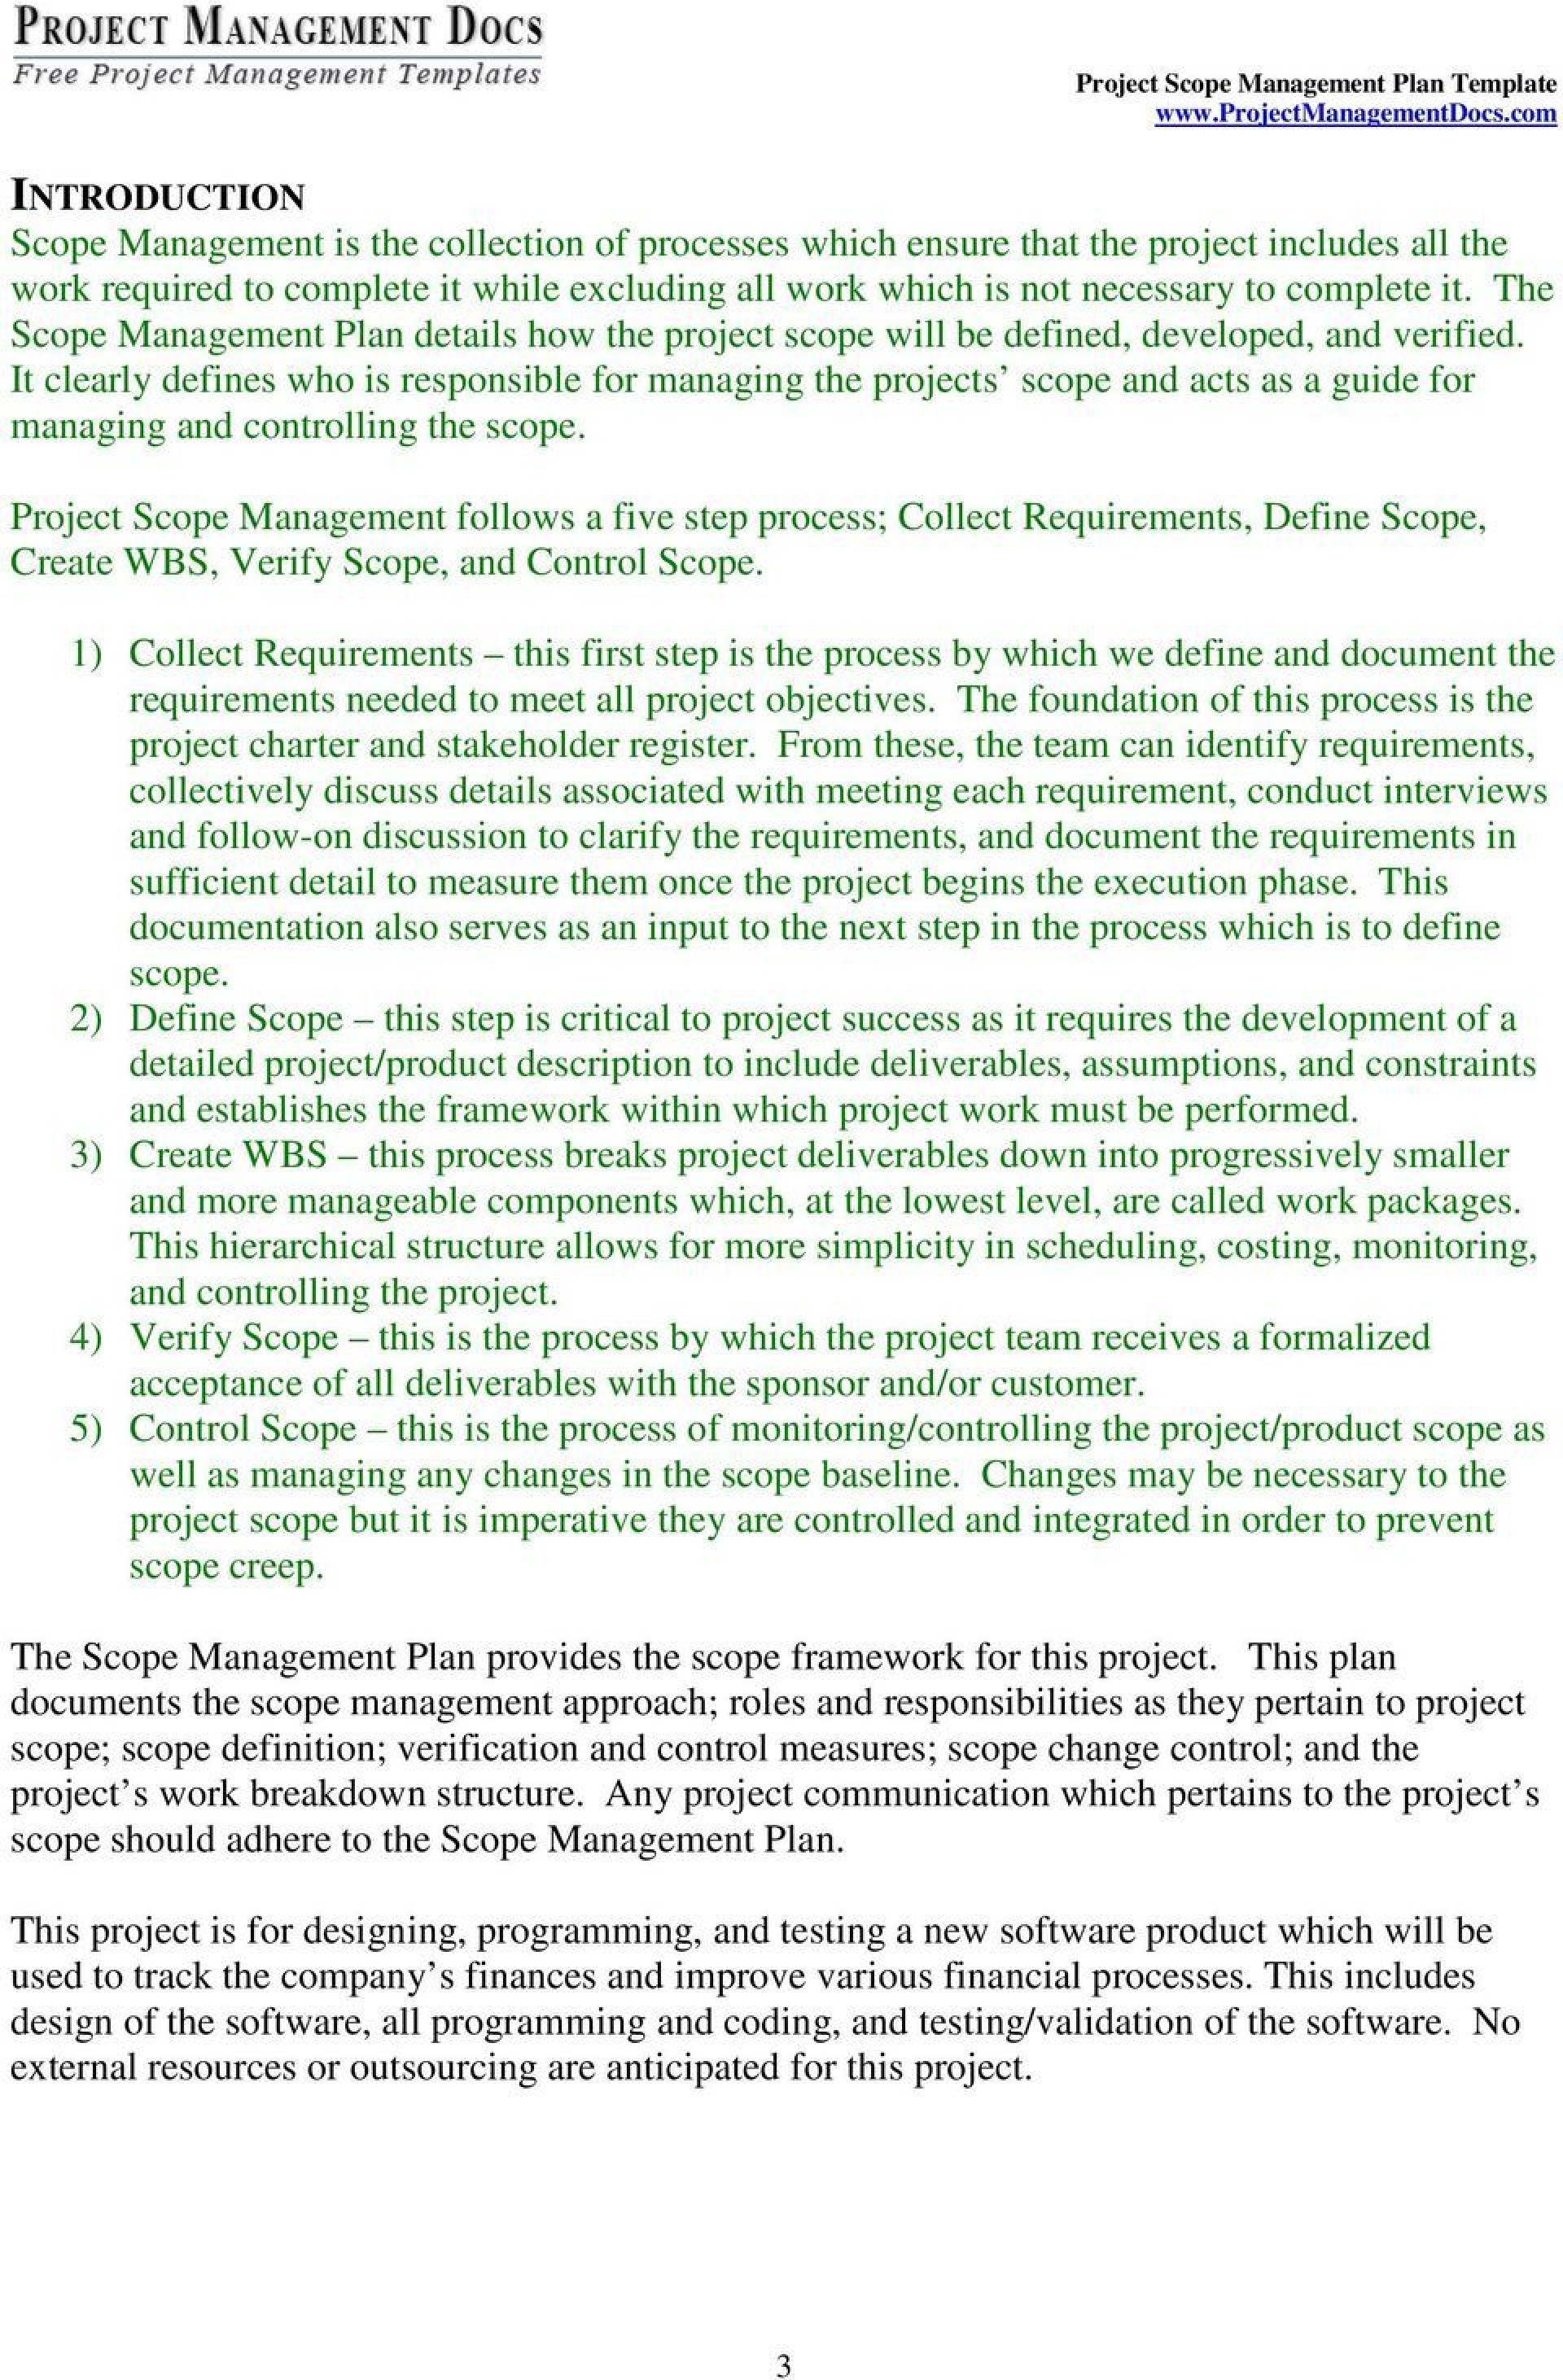 004 Staggering Project Scope Management Plan Template Free Sample 1920